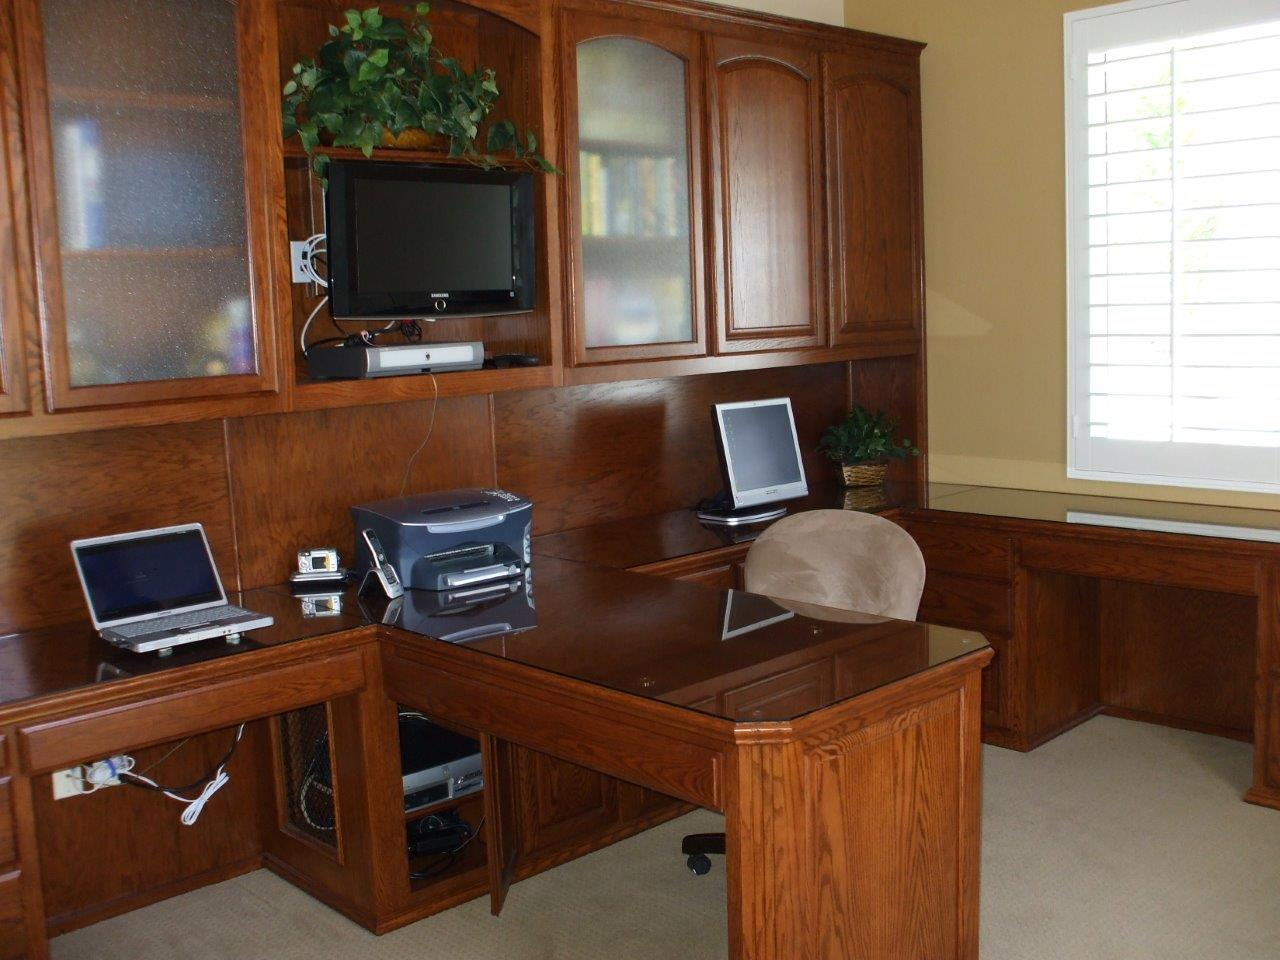 custom home office furniture can provide maximum storage and organization